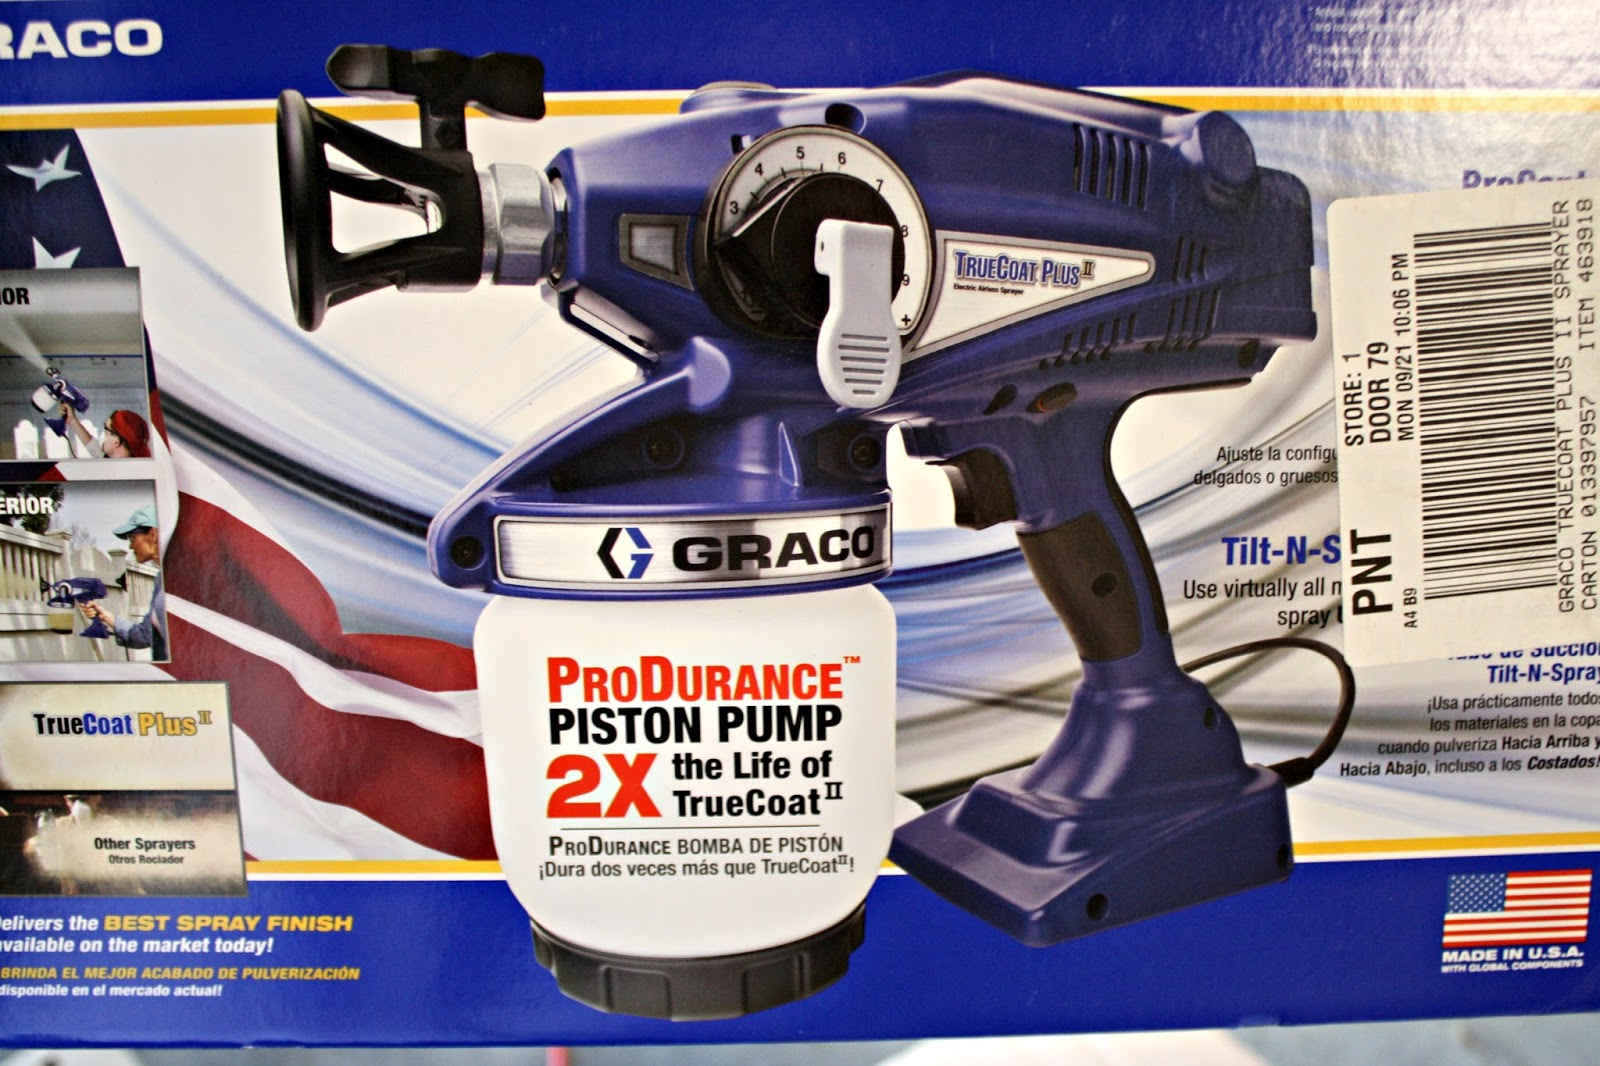 The Best Sprayer For Painting Kitchen Cabinets From